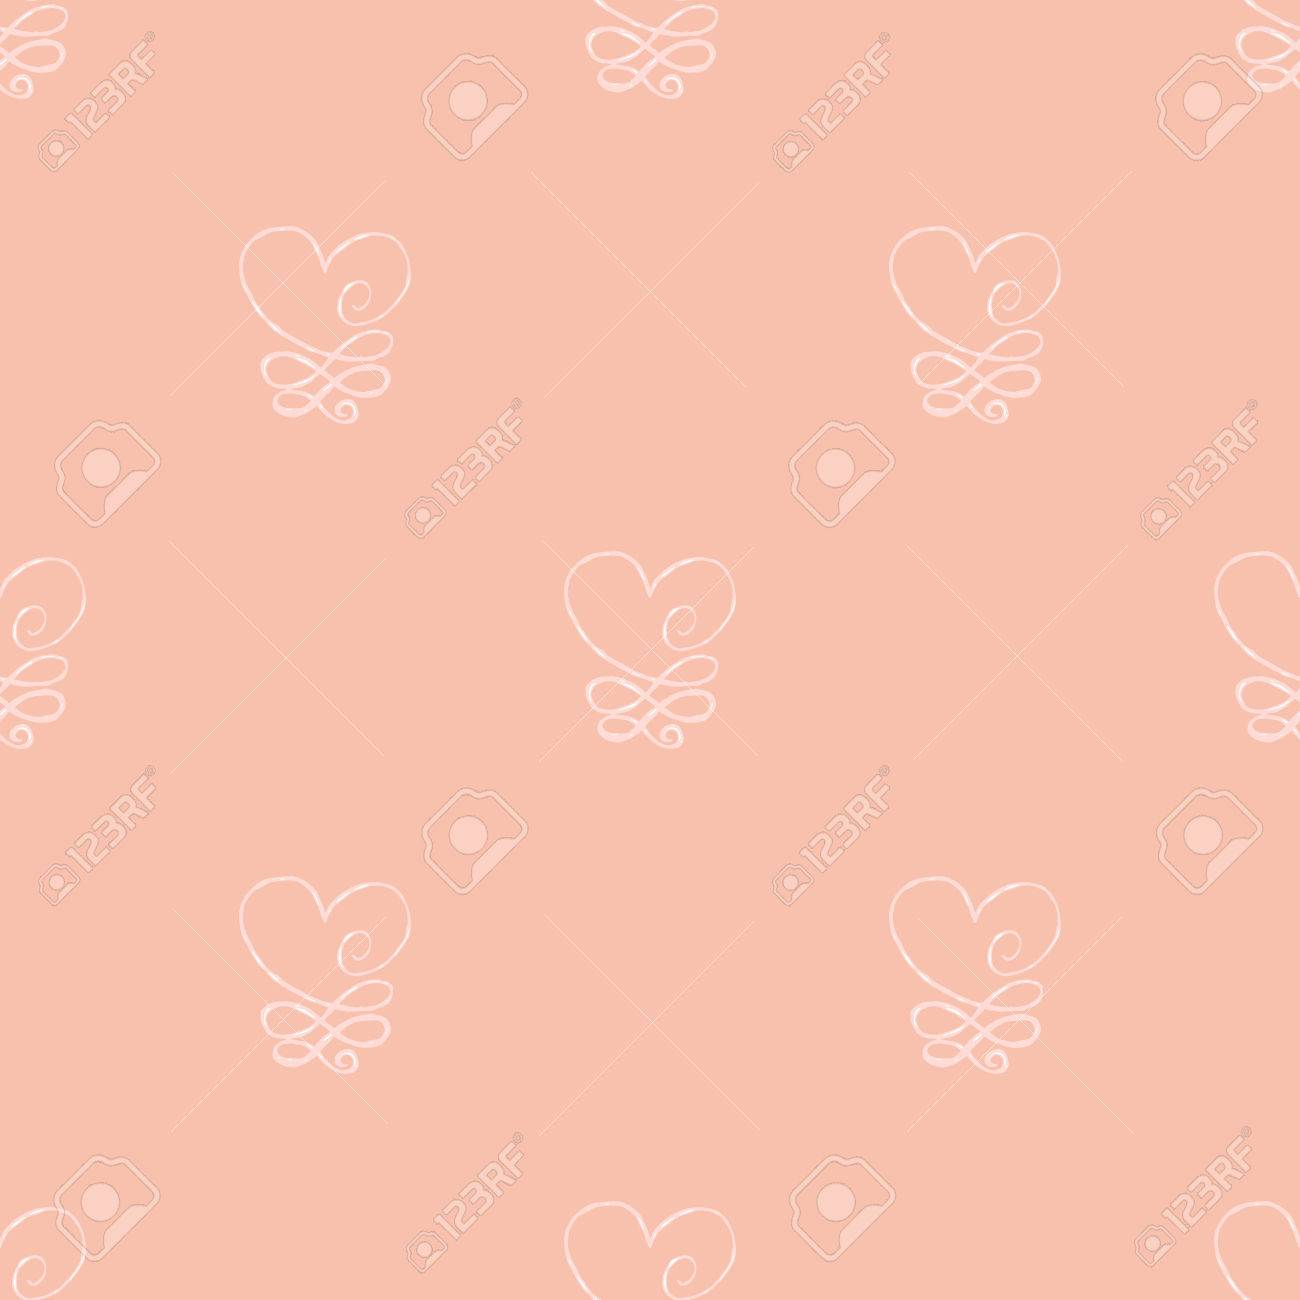 Heart Seamless Pattern Design Element For Wedding Greeting Card